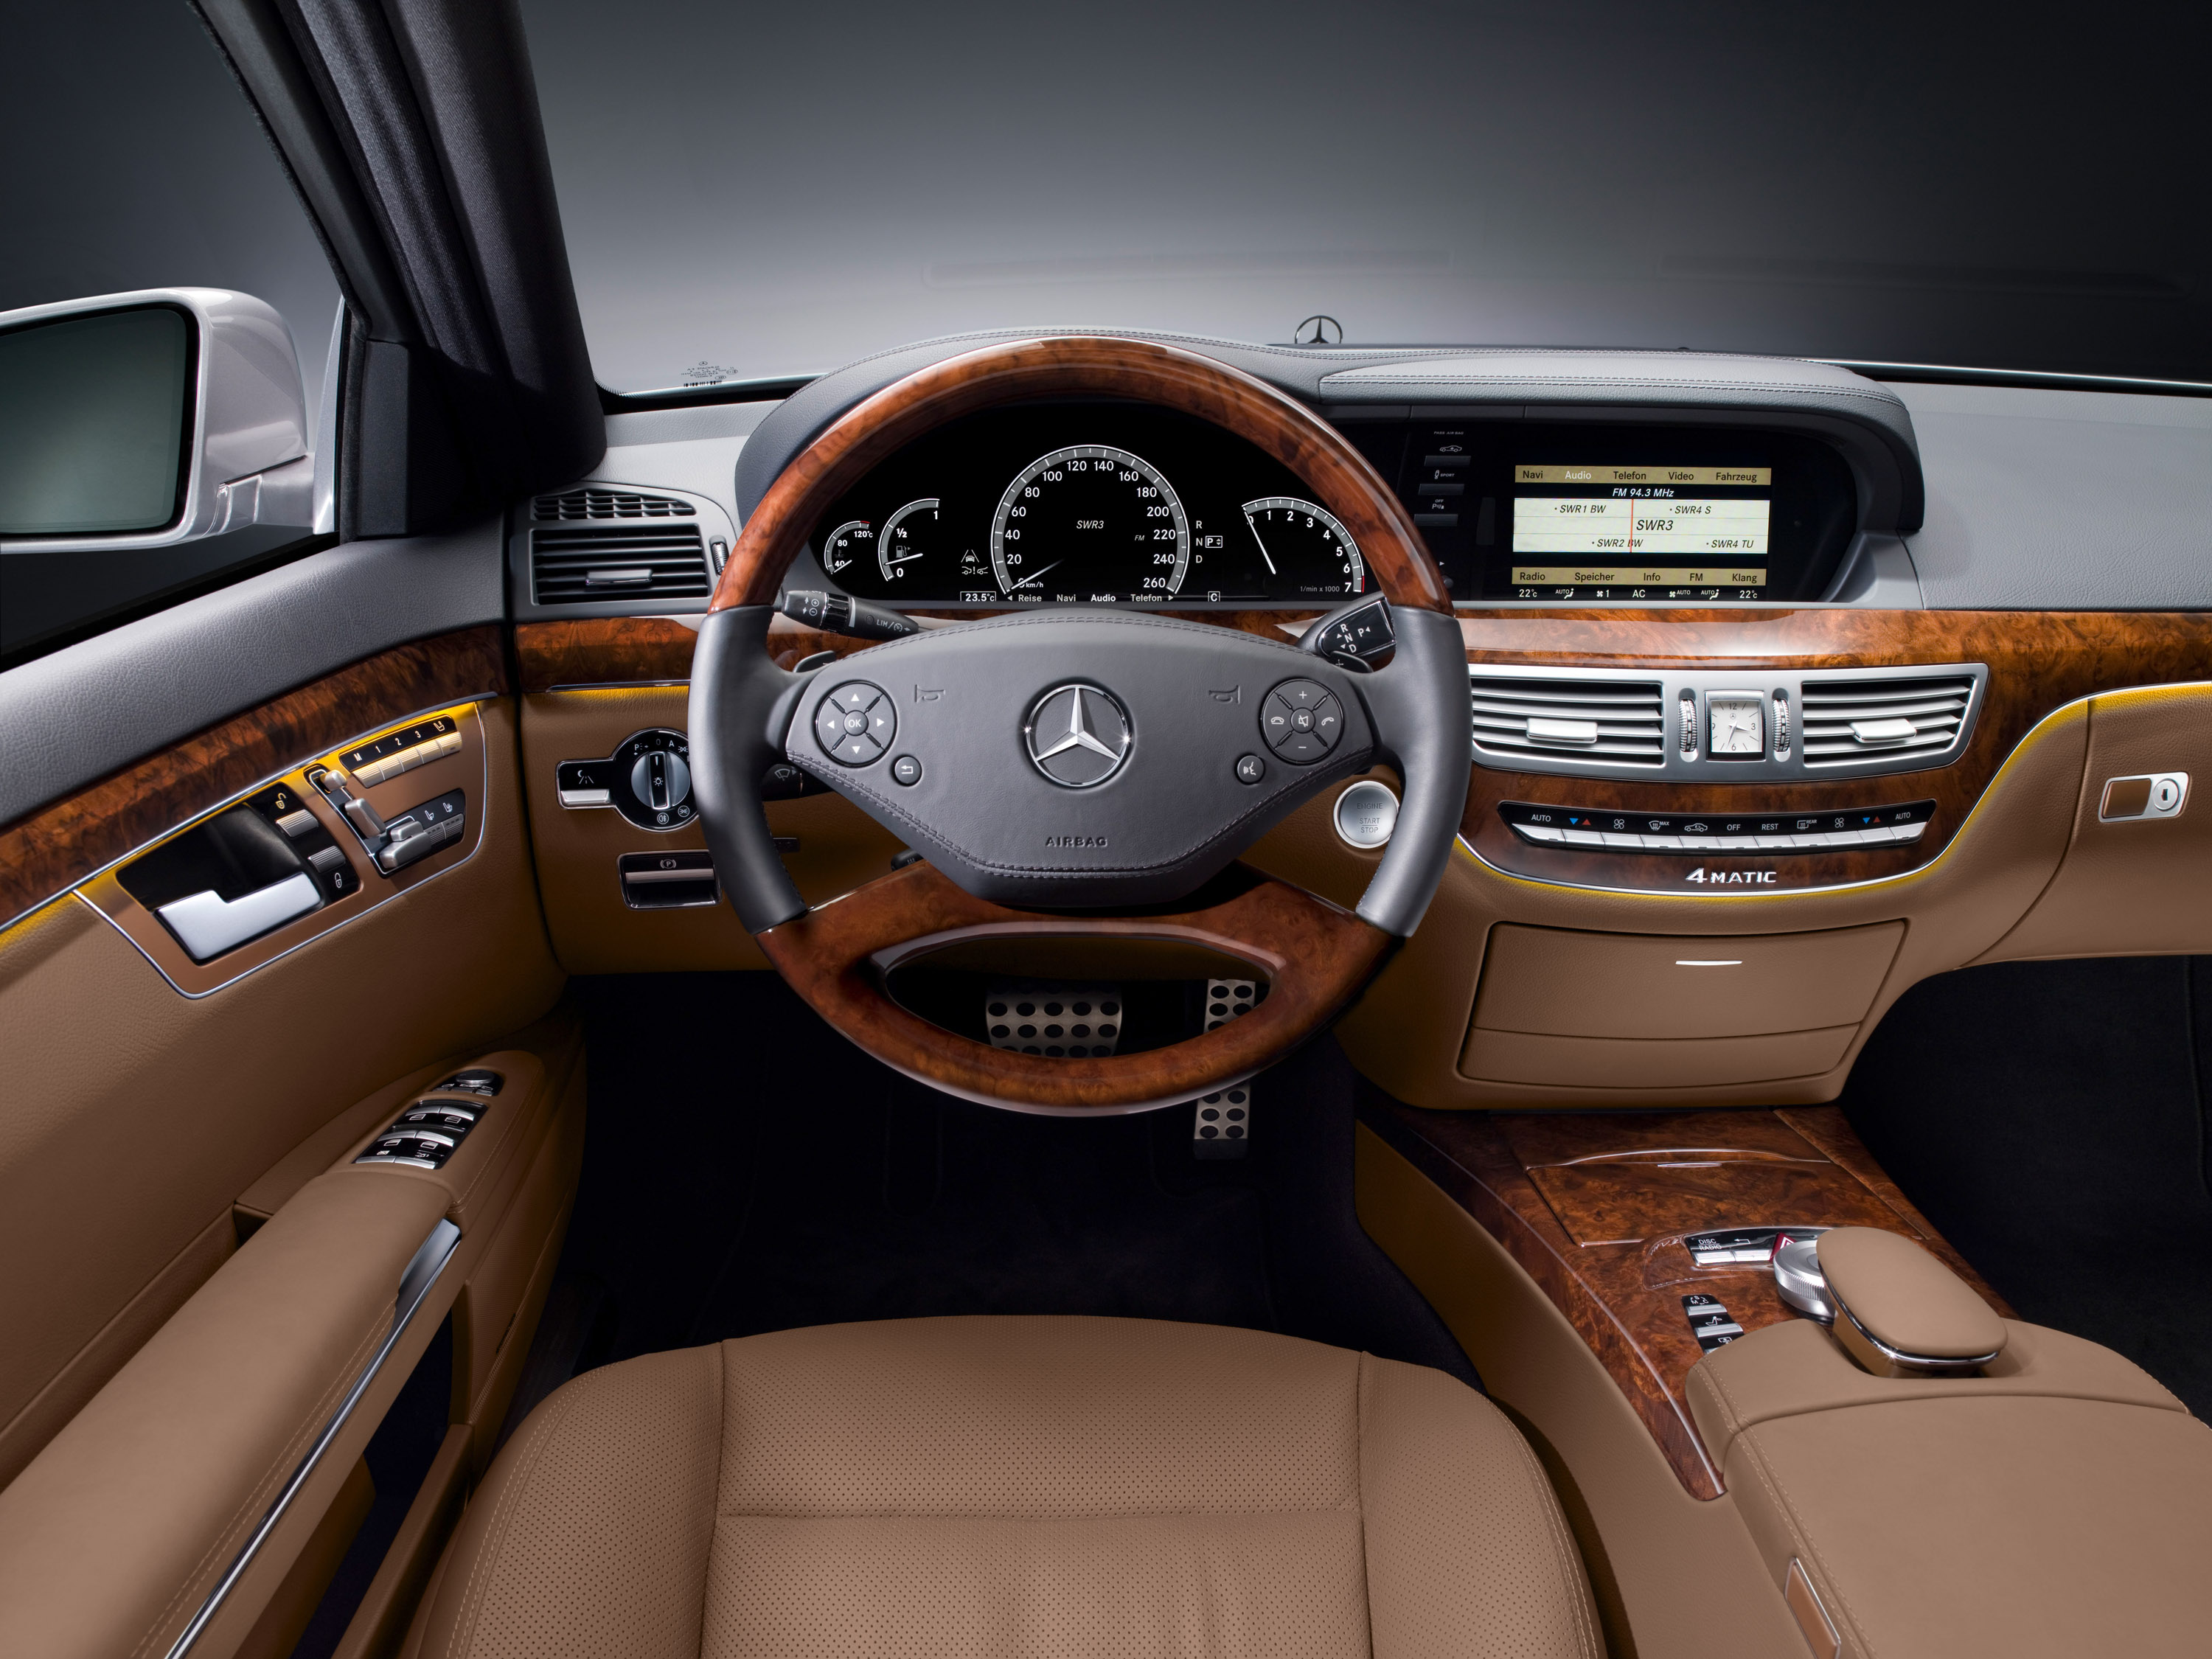 amg sports package for the 2009 s class and the cl class2009 mercedes benz s 500 4matic amg,